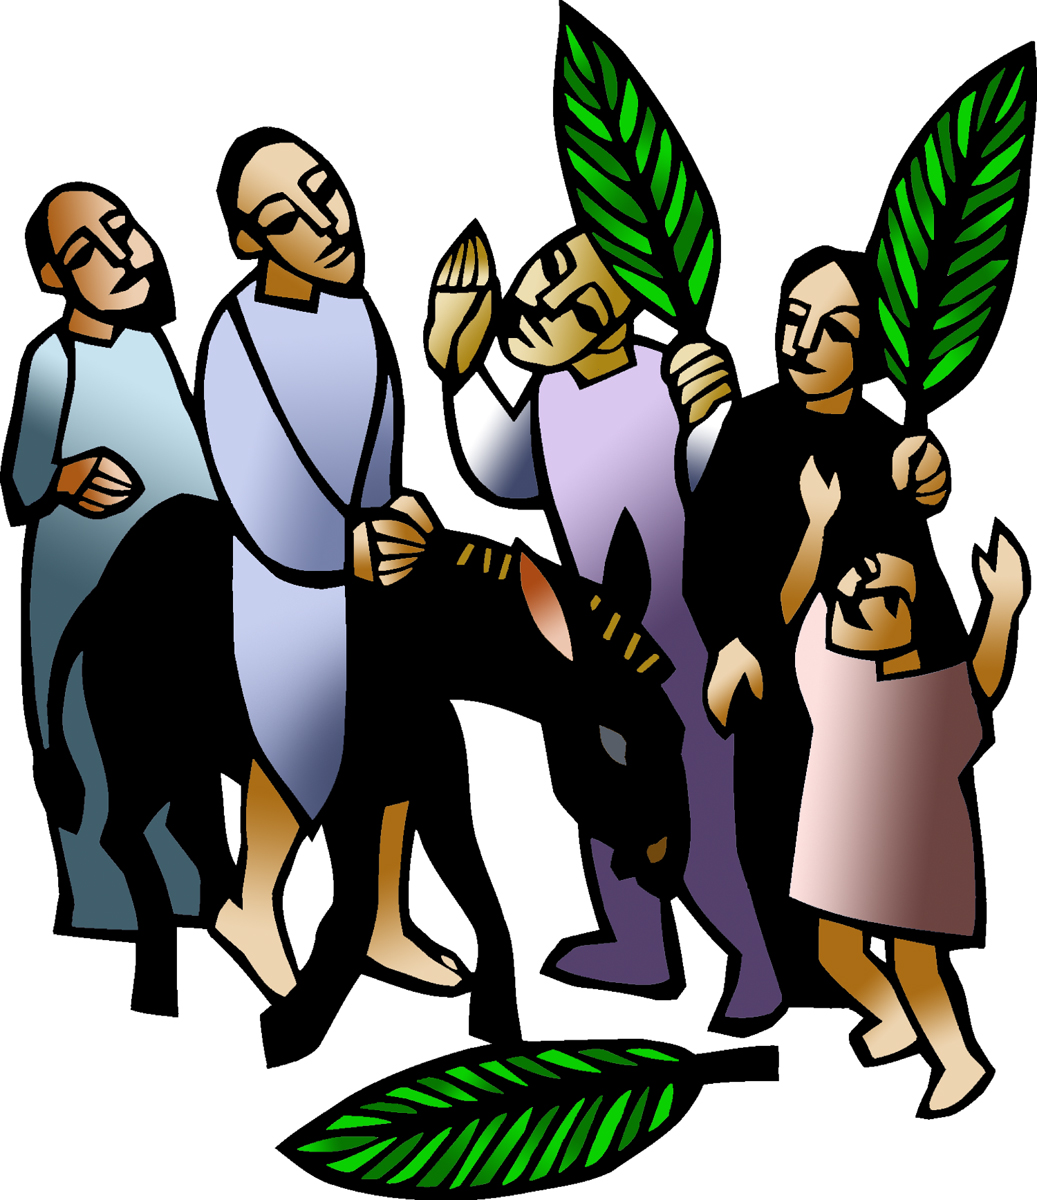 palm sunday clip art images clipart panda free clipart images rh clipartpanda com Christian Palm Sunday Palm Sunday Picture Illustrations